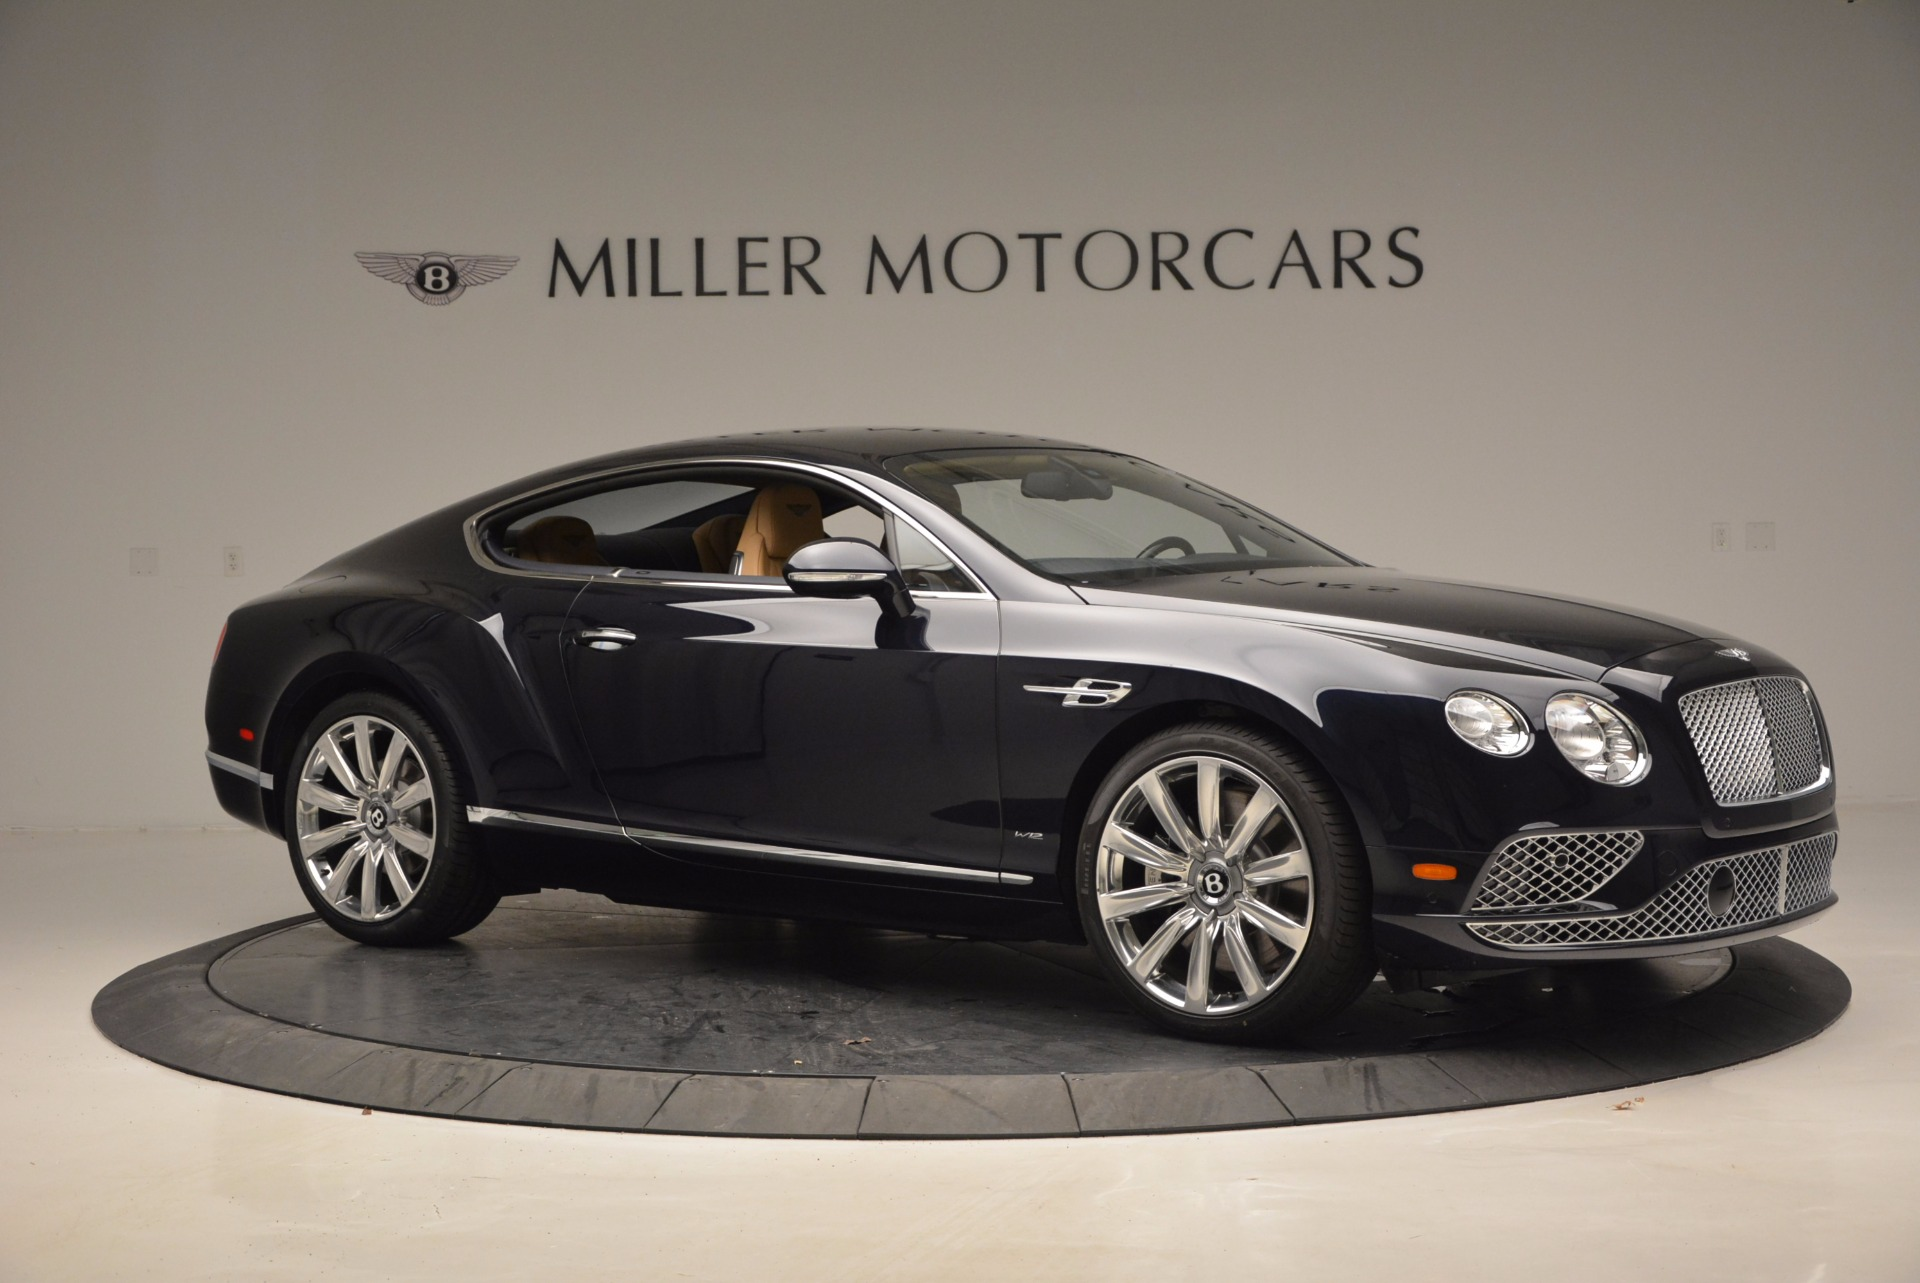 New 2017 Bentley Continental GT W12 For Sale In Westport, CT 904_p10